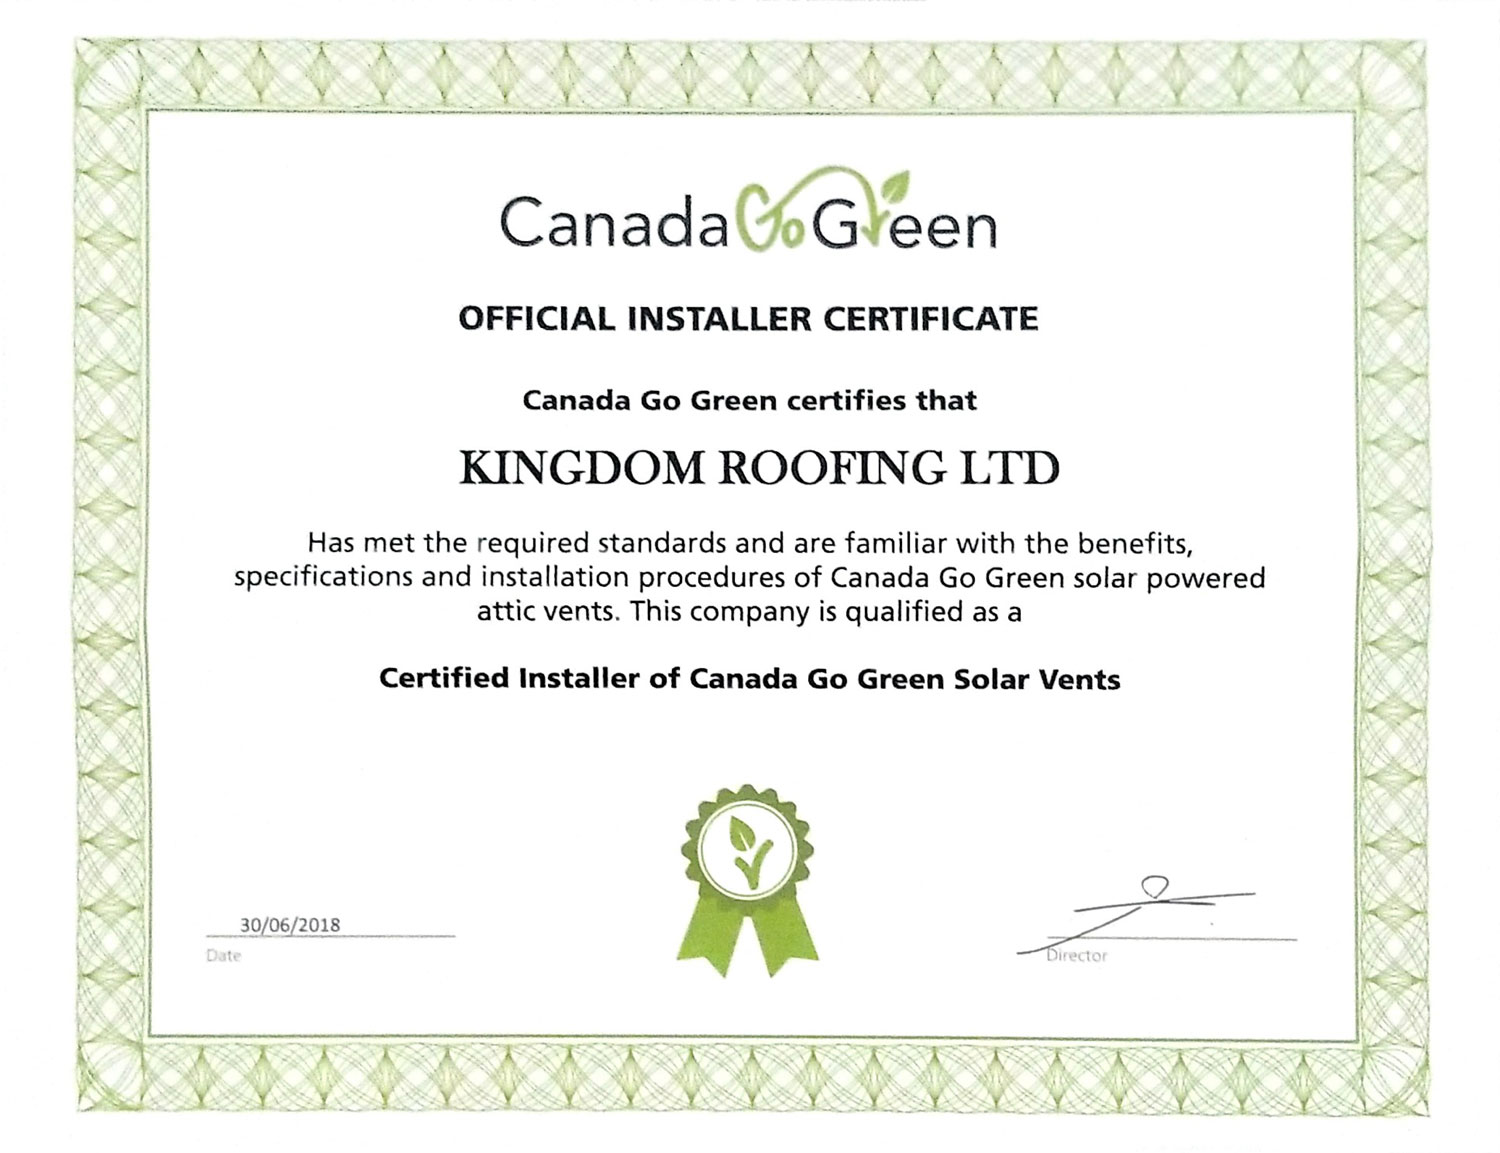 Services Kingdom Roofing Limited